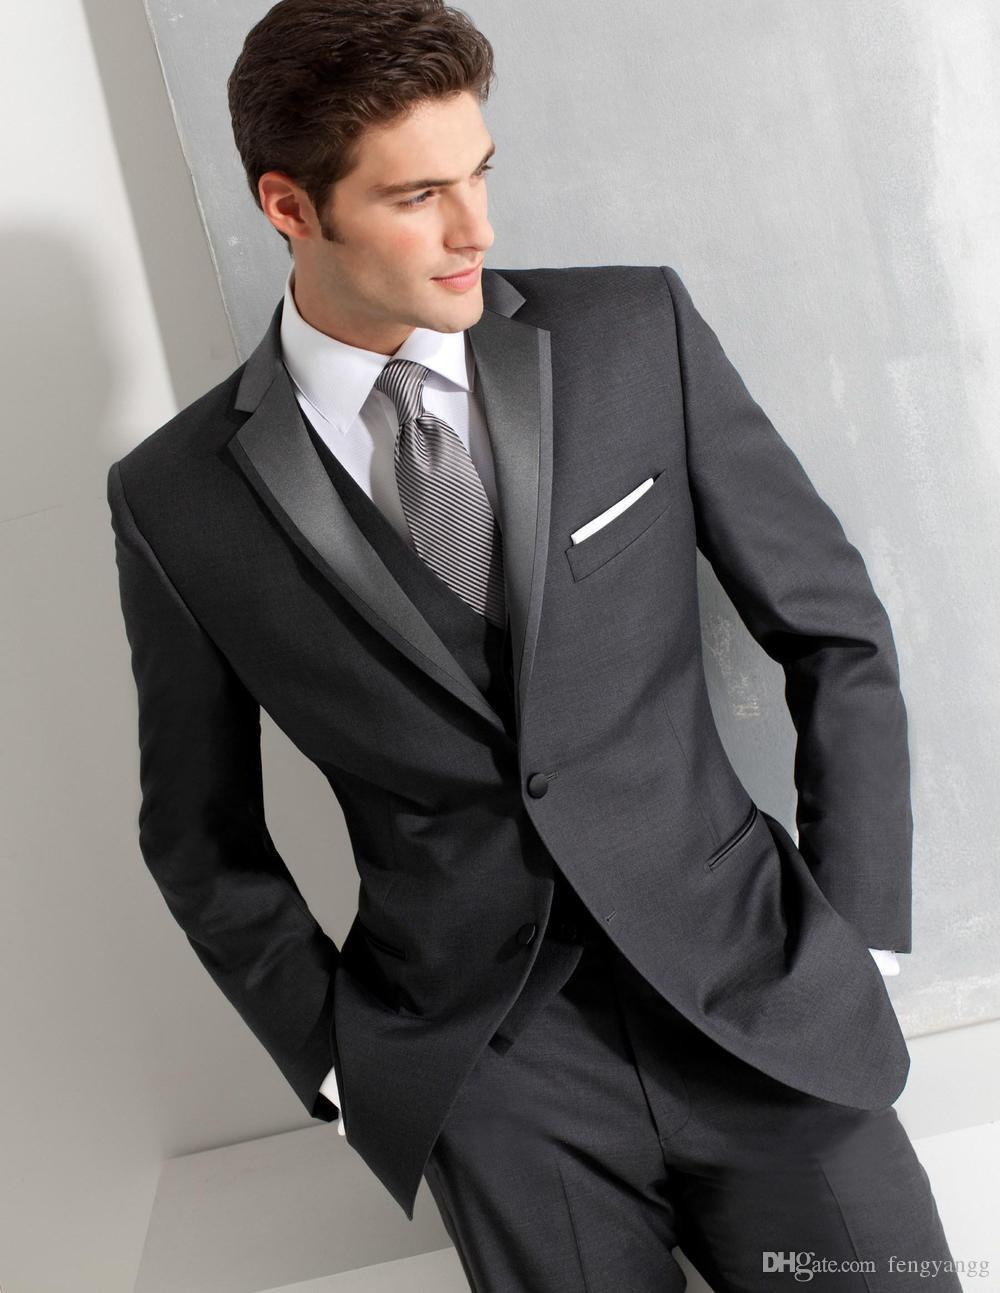 Grey 3 Pieces Slim Fit Wedding Suits Notched Lapel 2 Buttons Fomal Business Suit Groom Tuxedos for Evening (Jacket+Vest+Pants) Custom Made